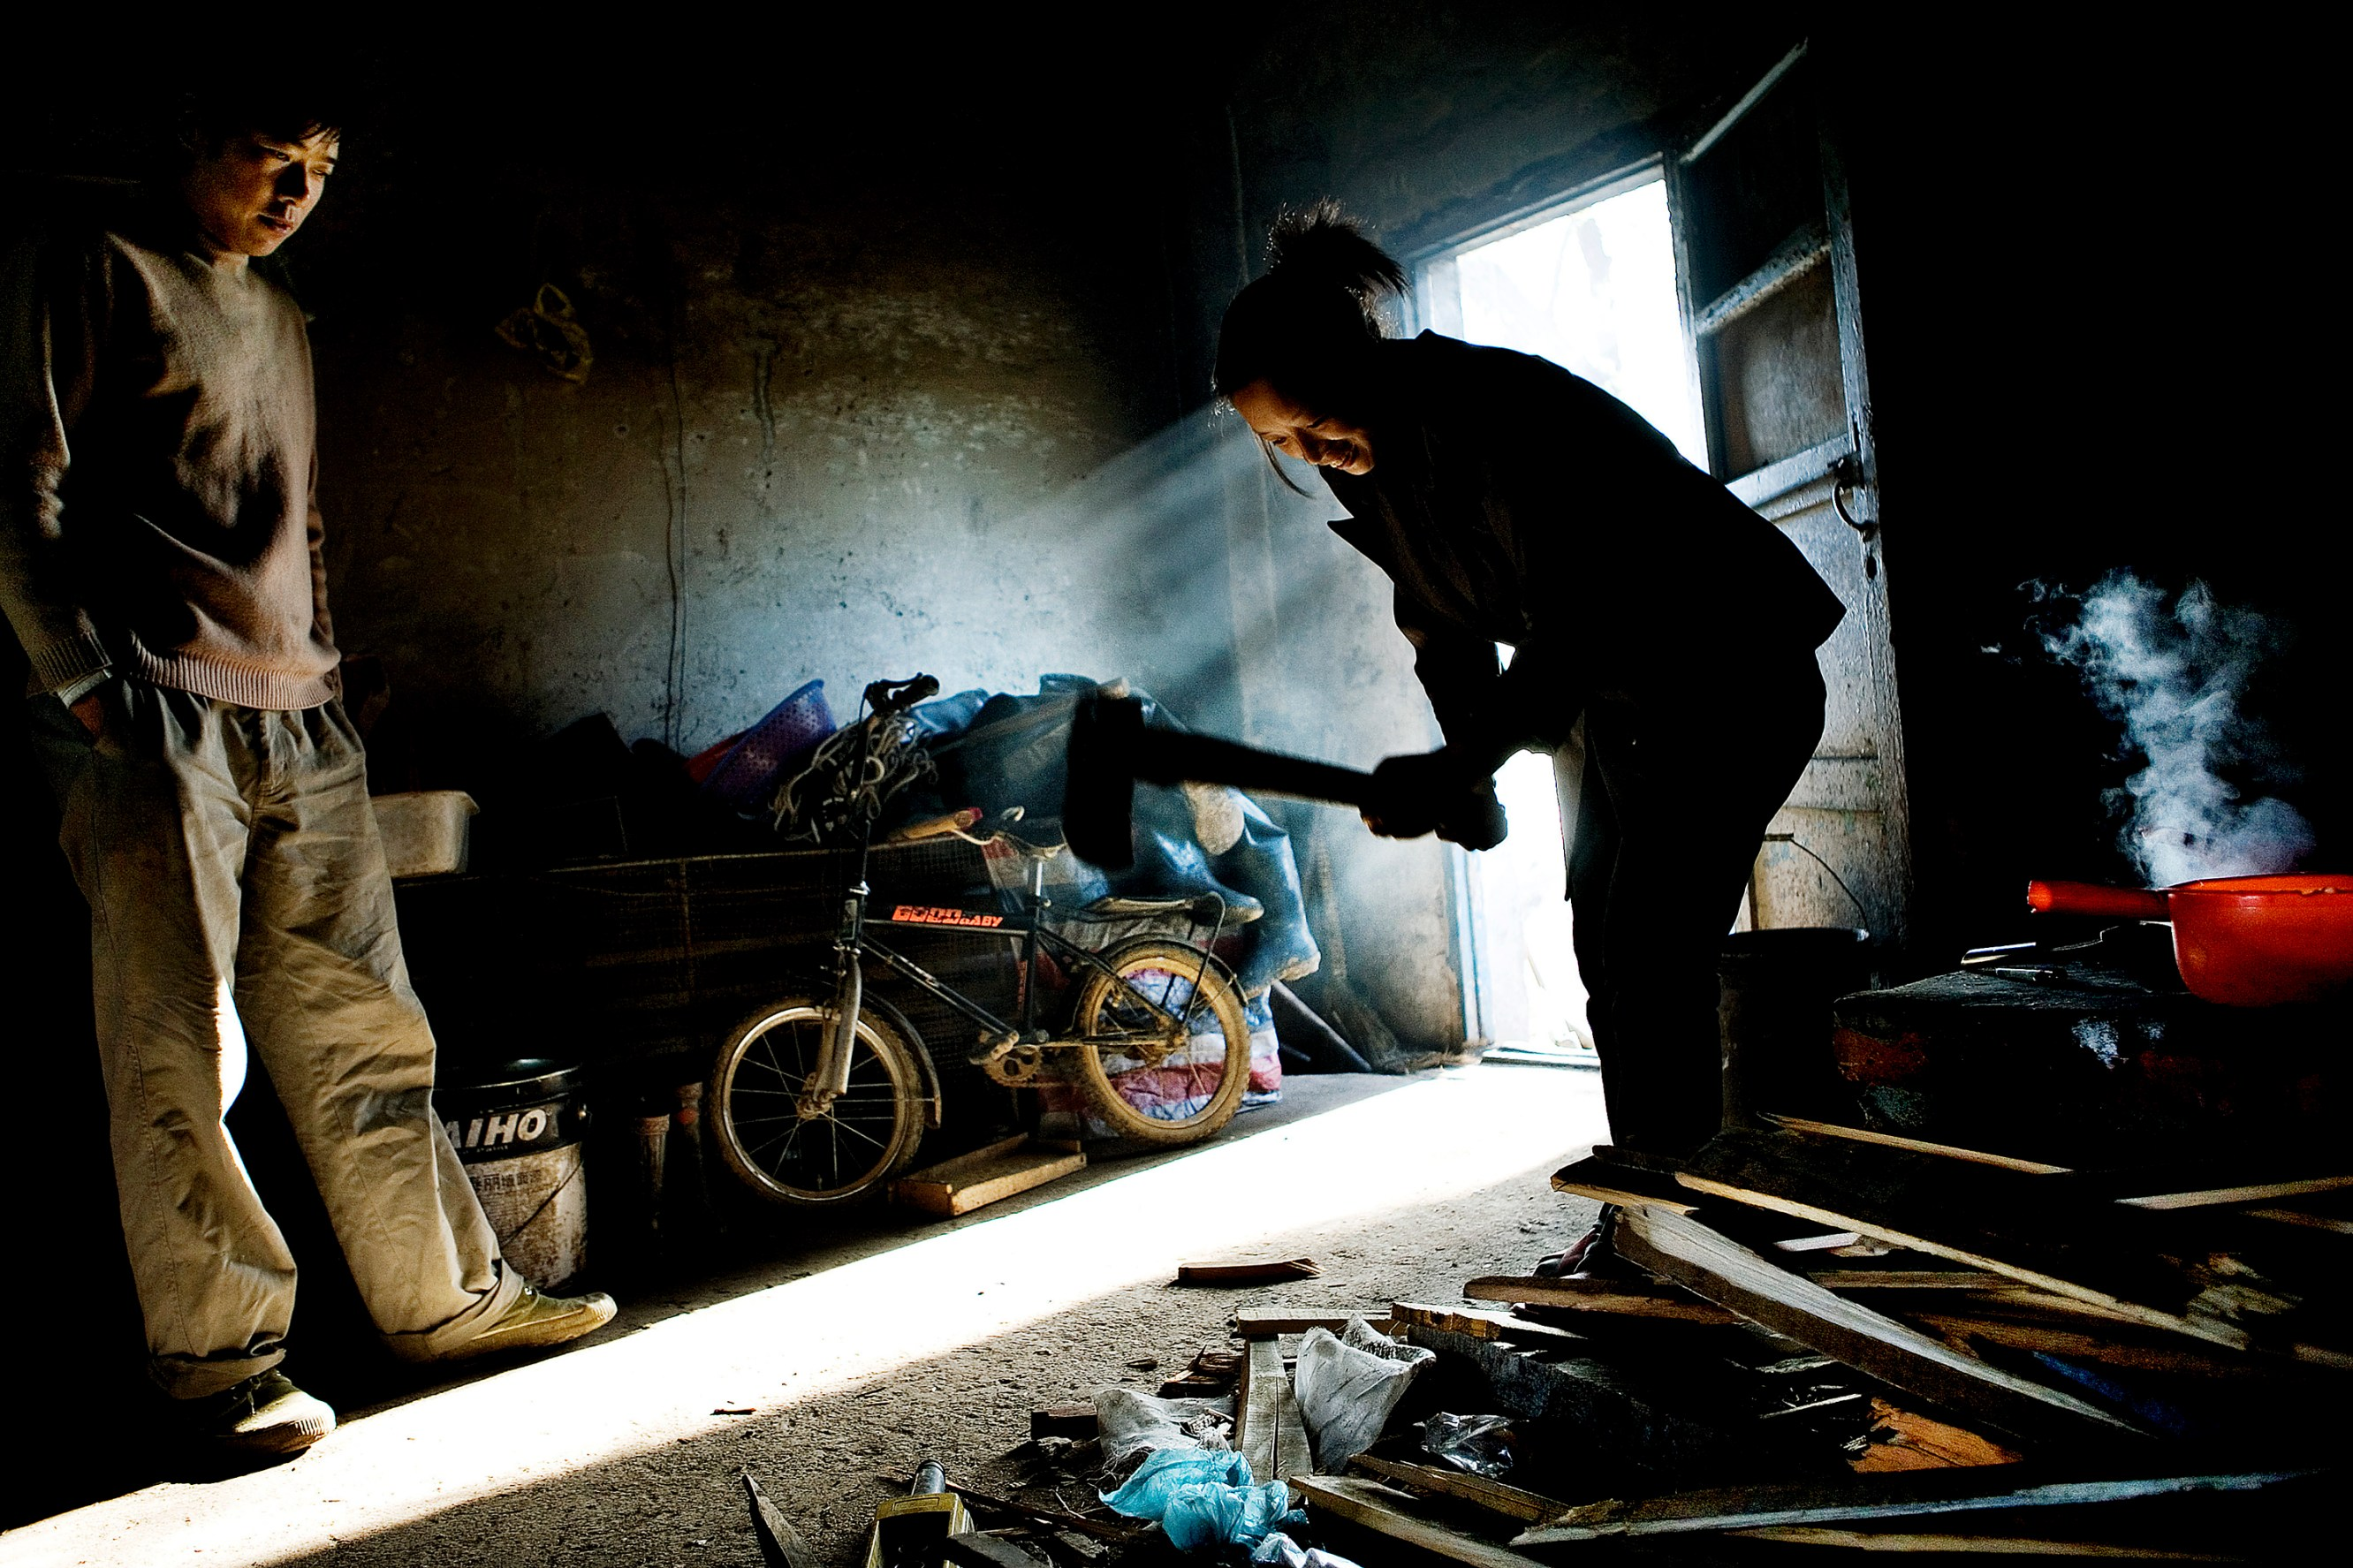 The family has to boil up water in the morning to wash the sleep away from their eyes, so Yang Chaozhen is cutting up wood for the open fireplace, before the day's work at the sewage lines begins. Christian Als / GraziaNeri